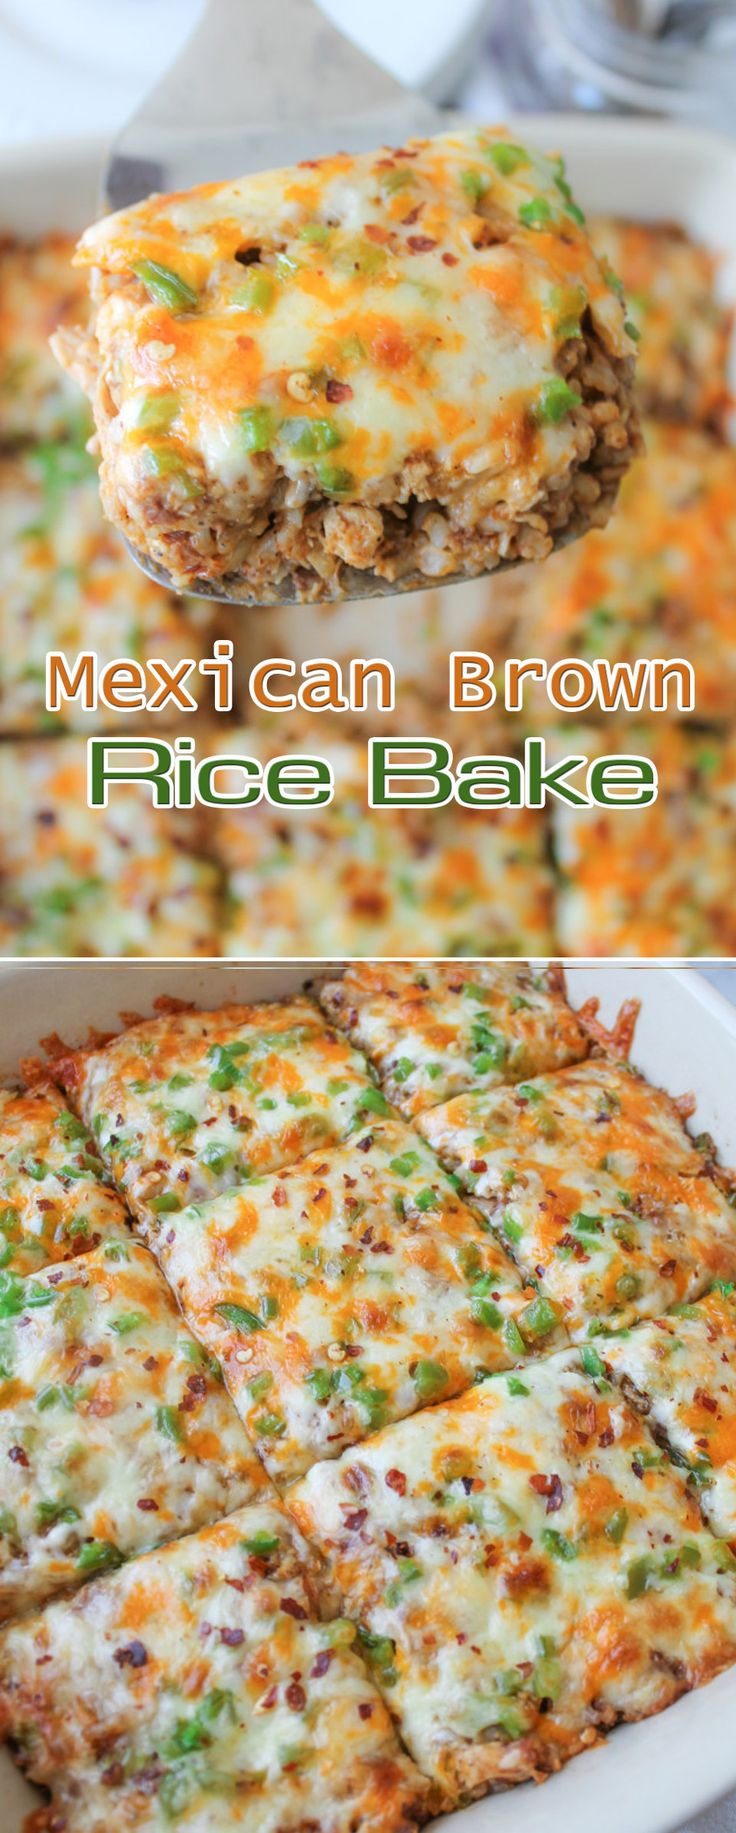 Mexican Brown Rice Bake - I might have to throw the beans in the blender so my husband doesn't notice but I'm definitely making this recipe.